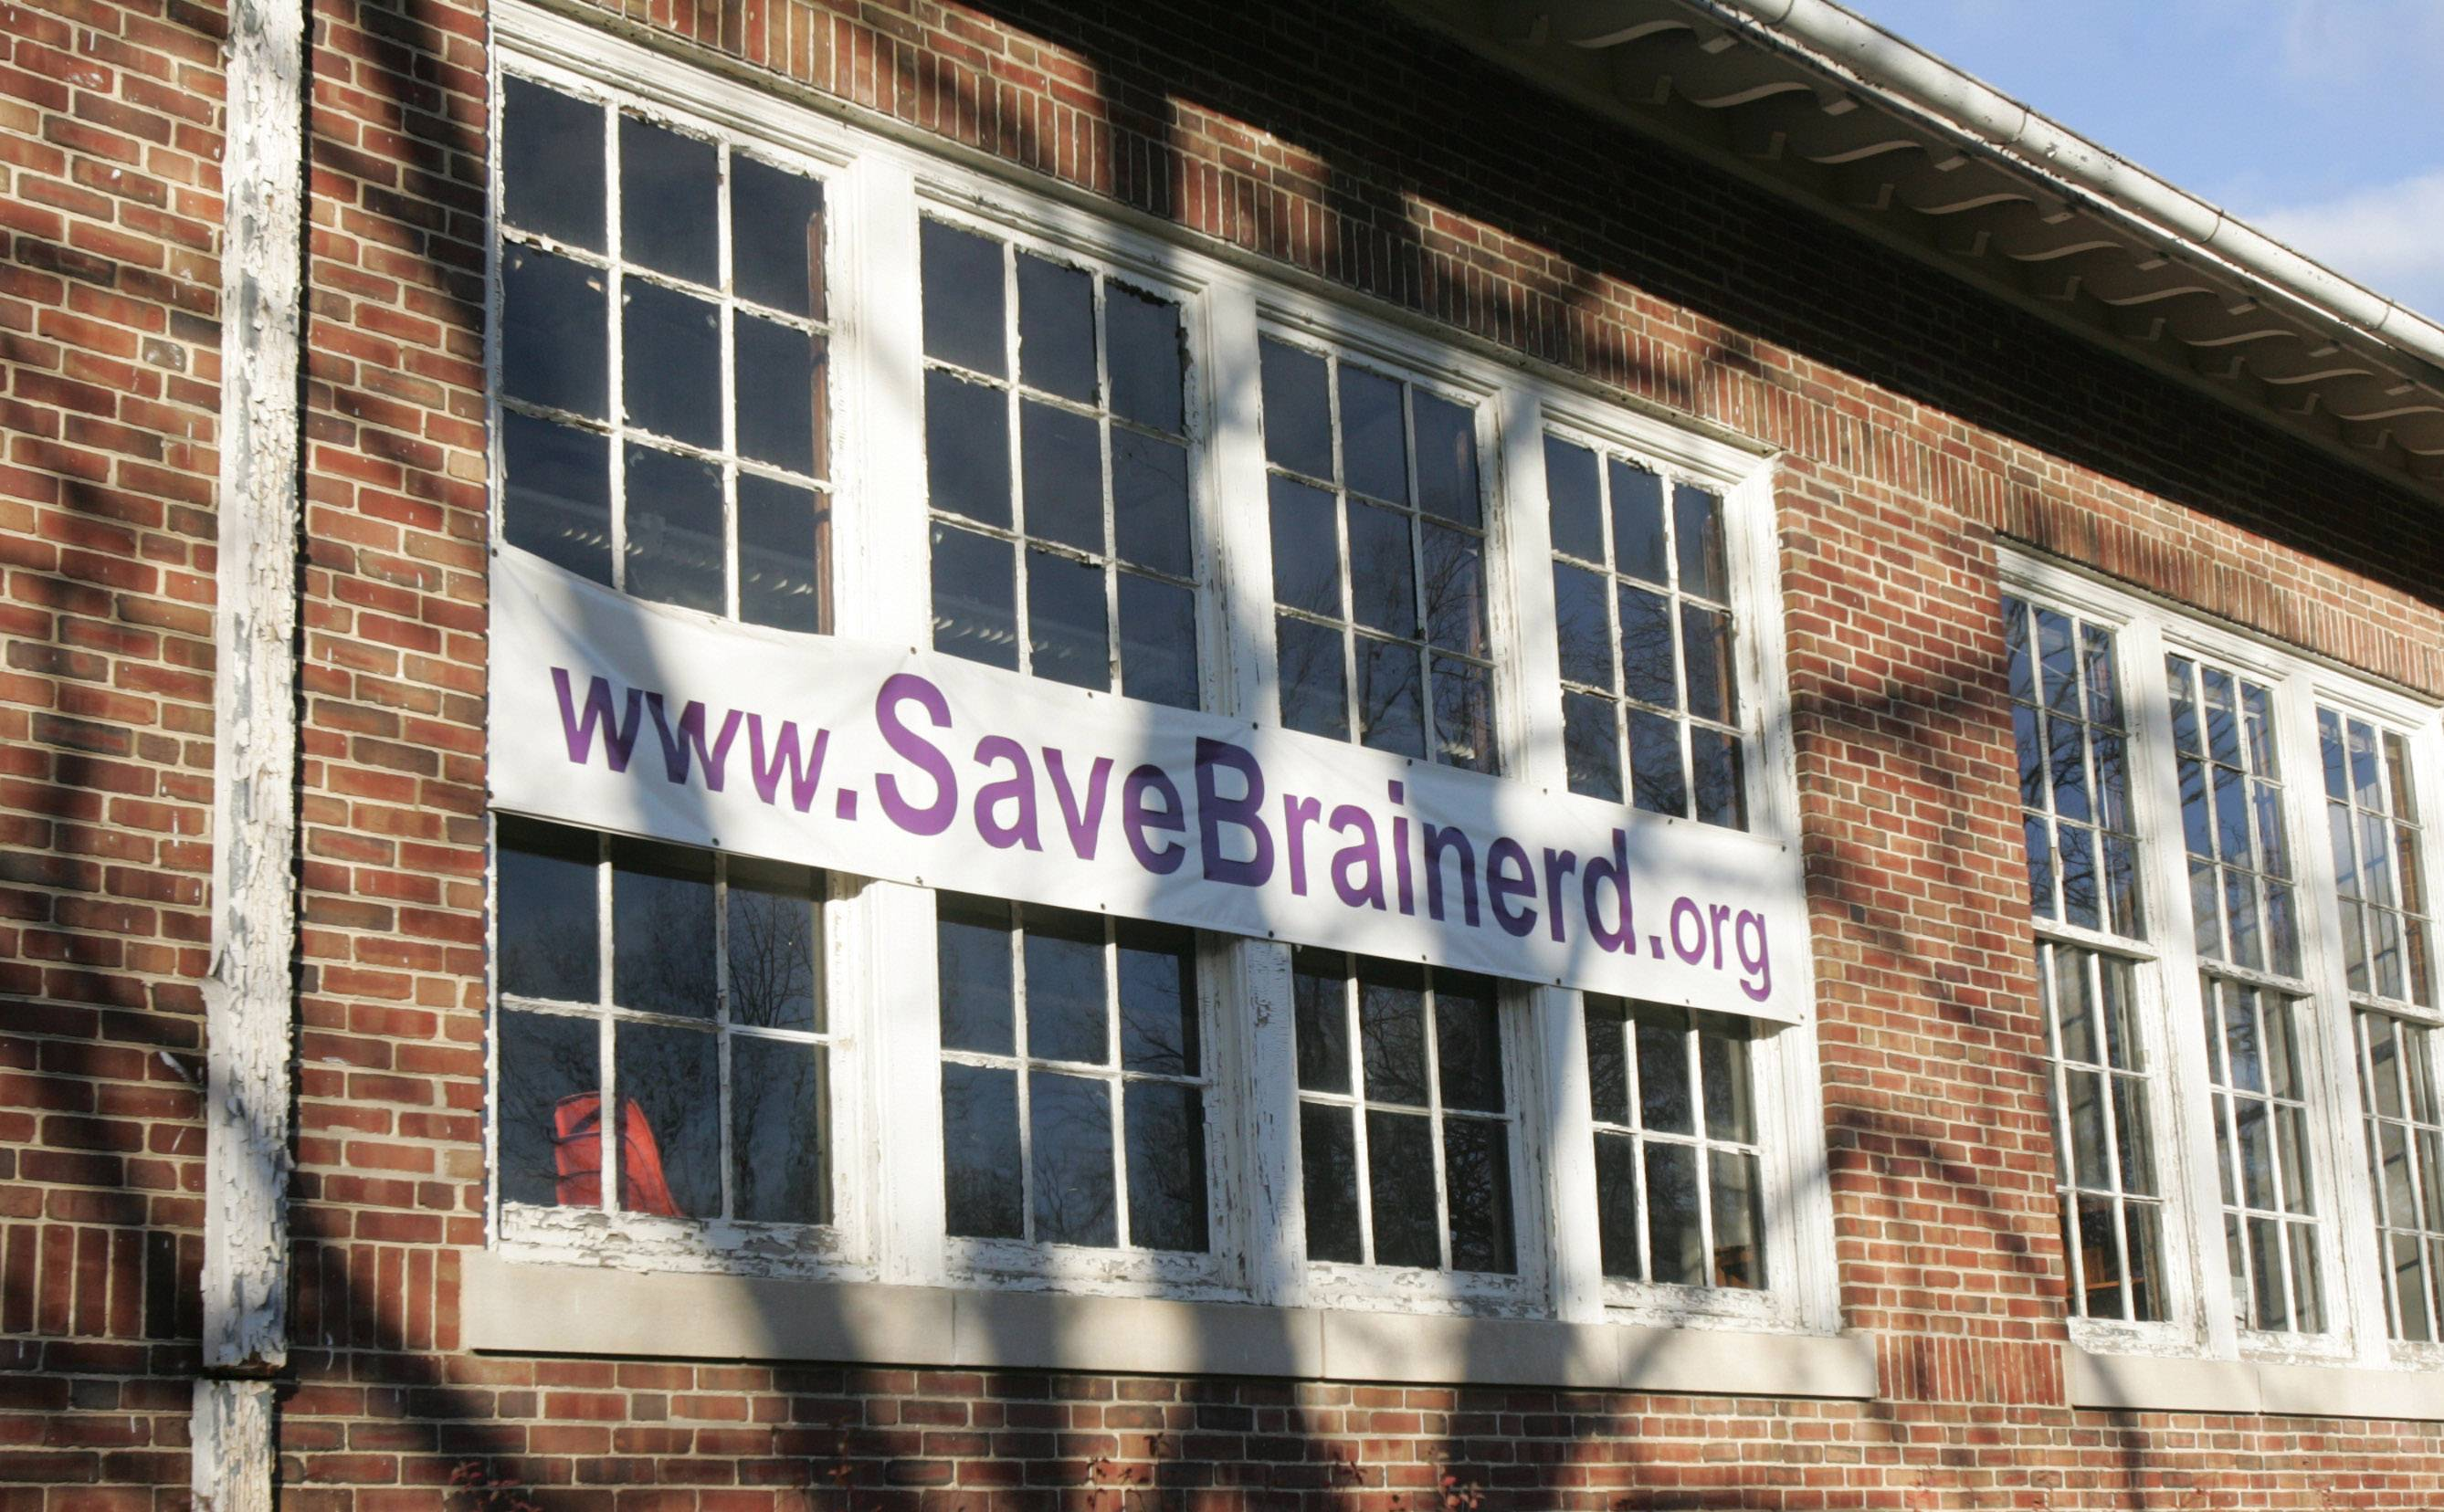 This sign on the Brainerd building in Libertyville will be removed and replaced with one without the word 'save'.